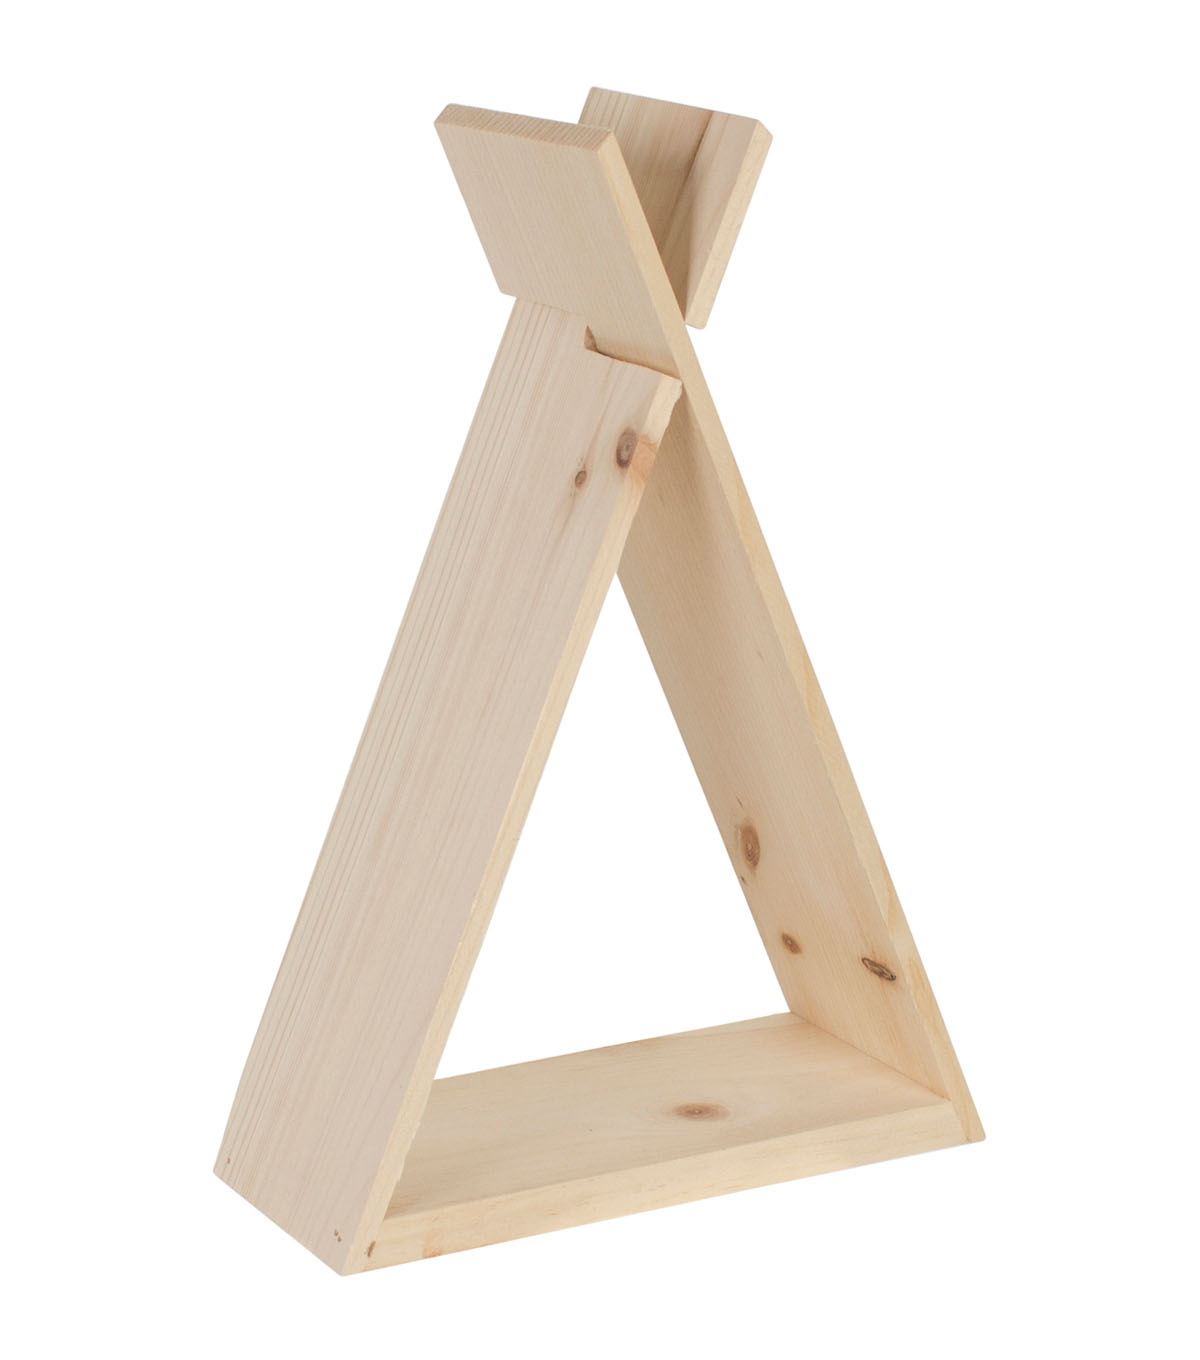 Walnut Hollow Small Pine Teepee Shelf